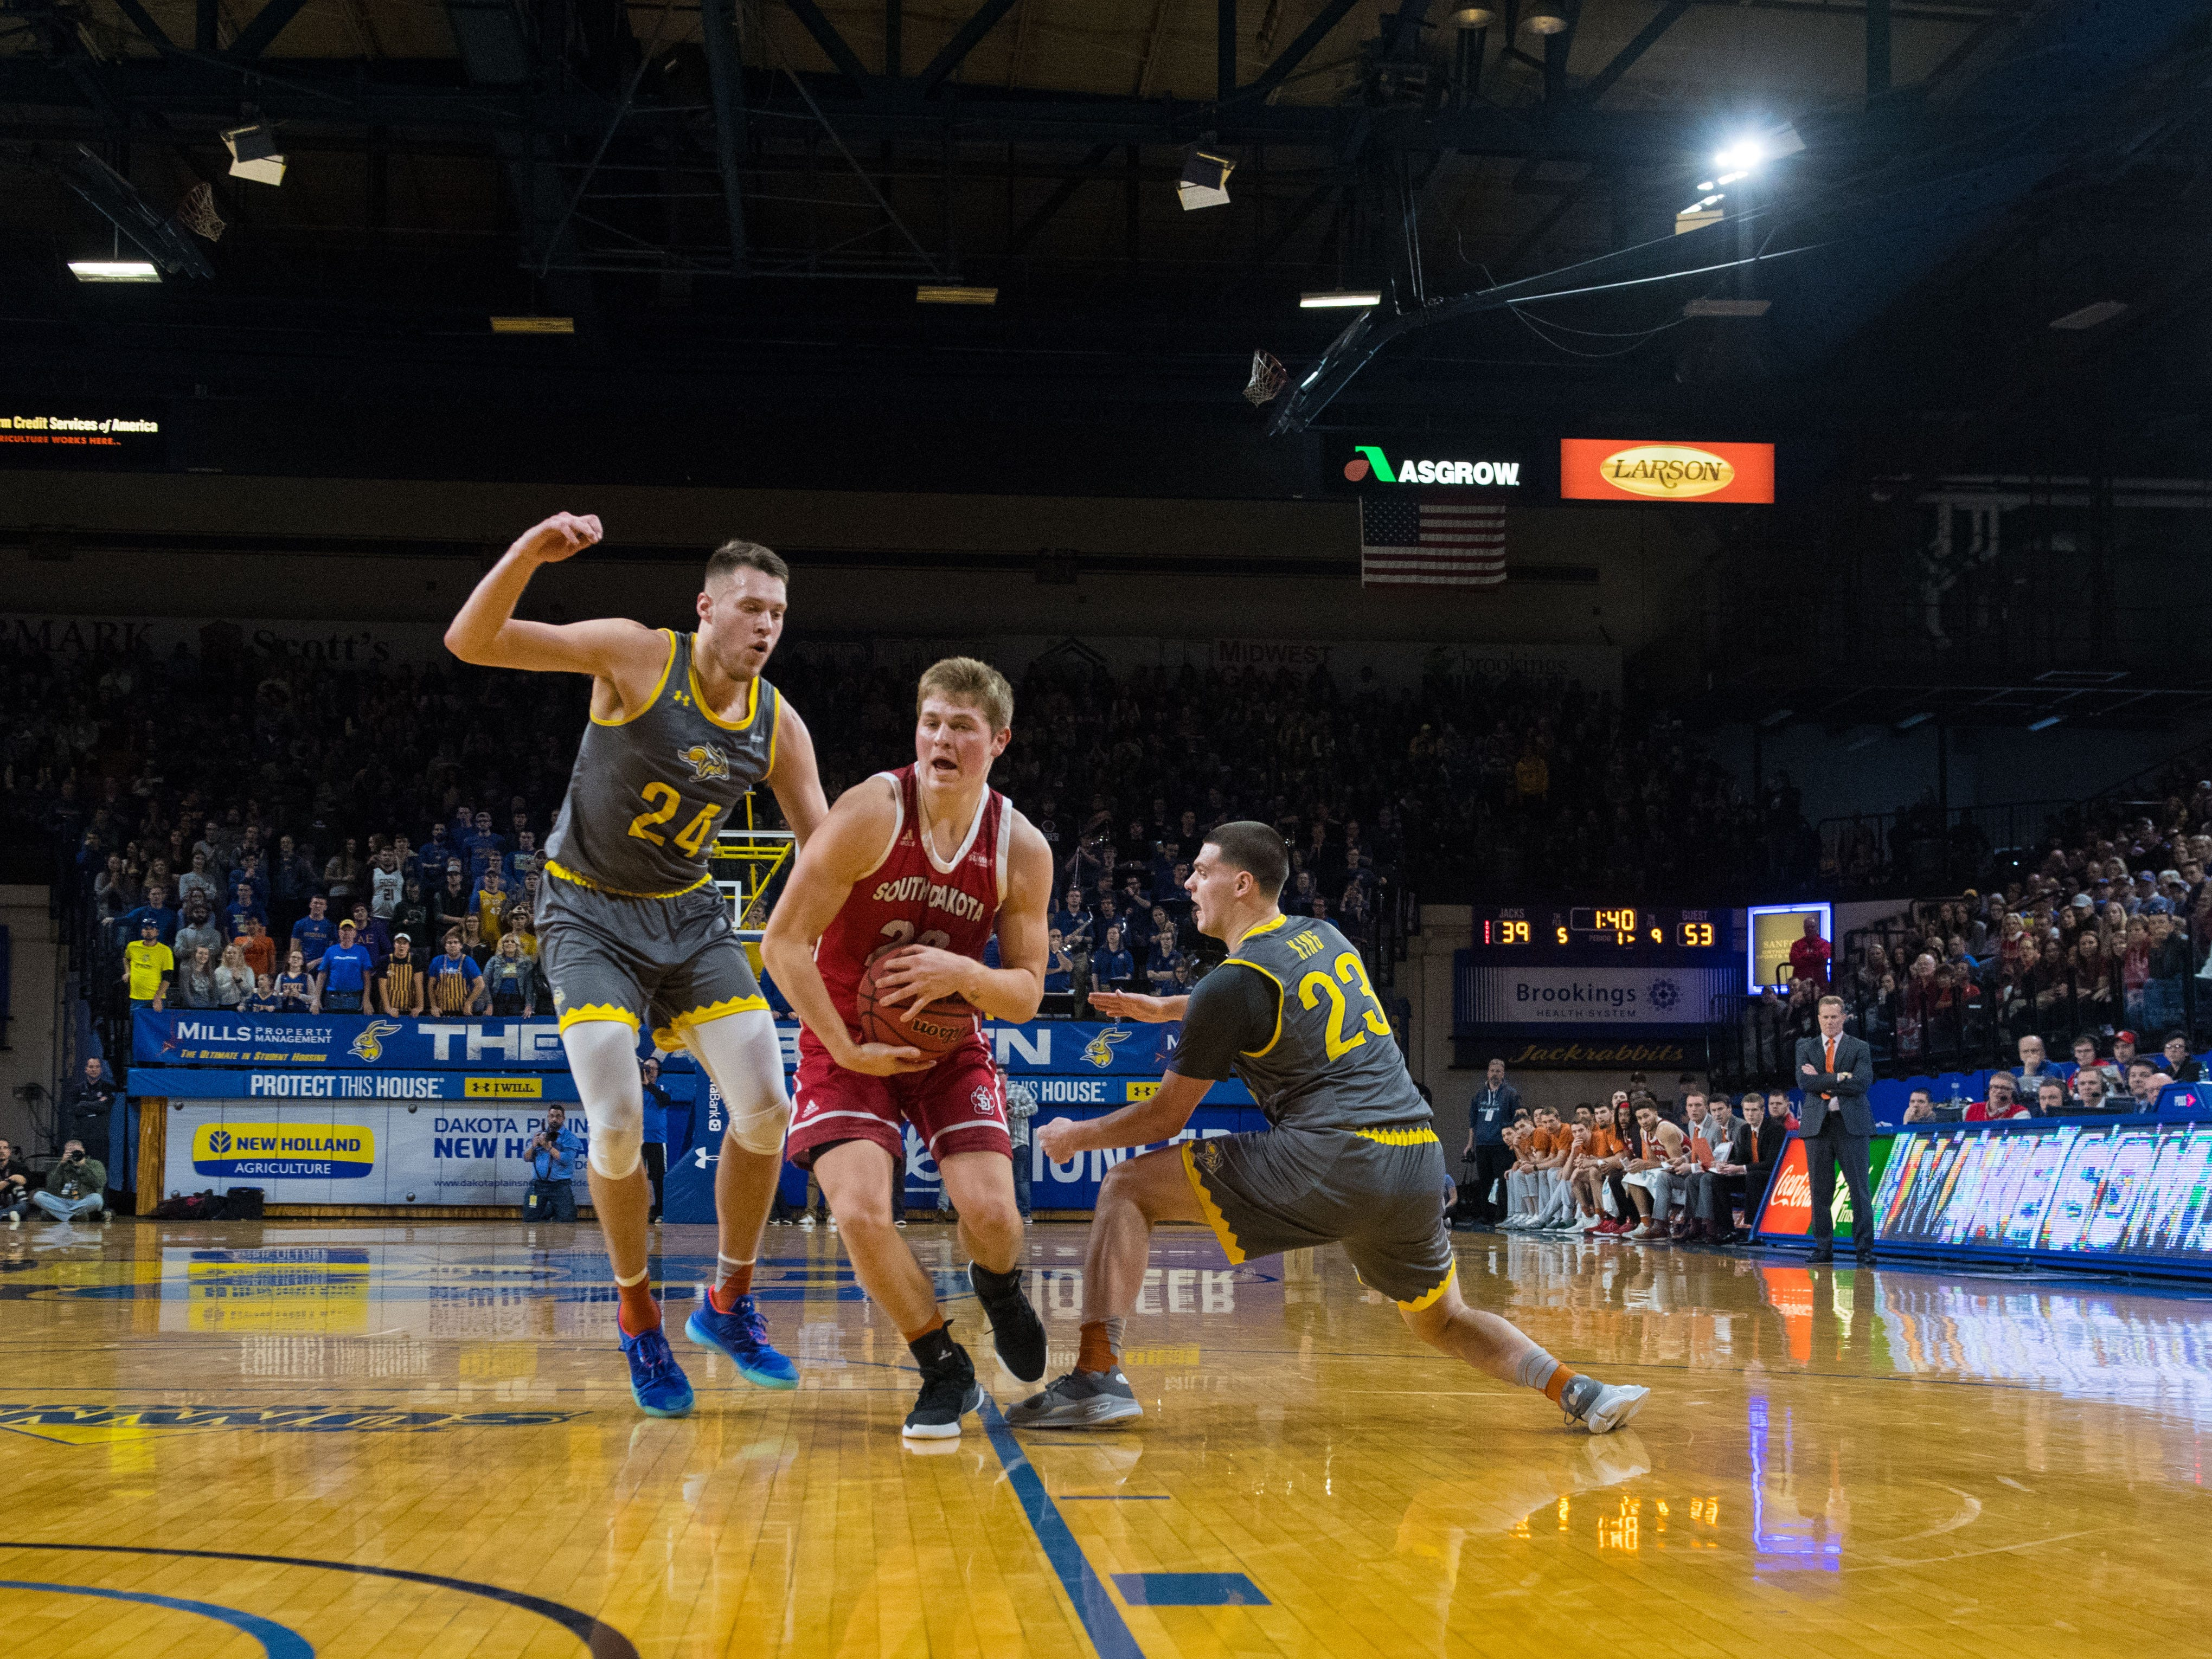 SDSU's players block USD's Tyler Peterson (22) during a game, Saturday, Feb. 23, 2019 in Brookings, S.D.